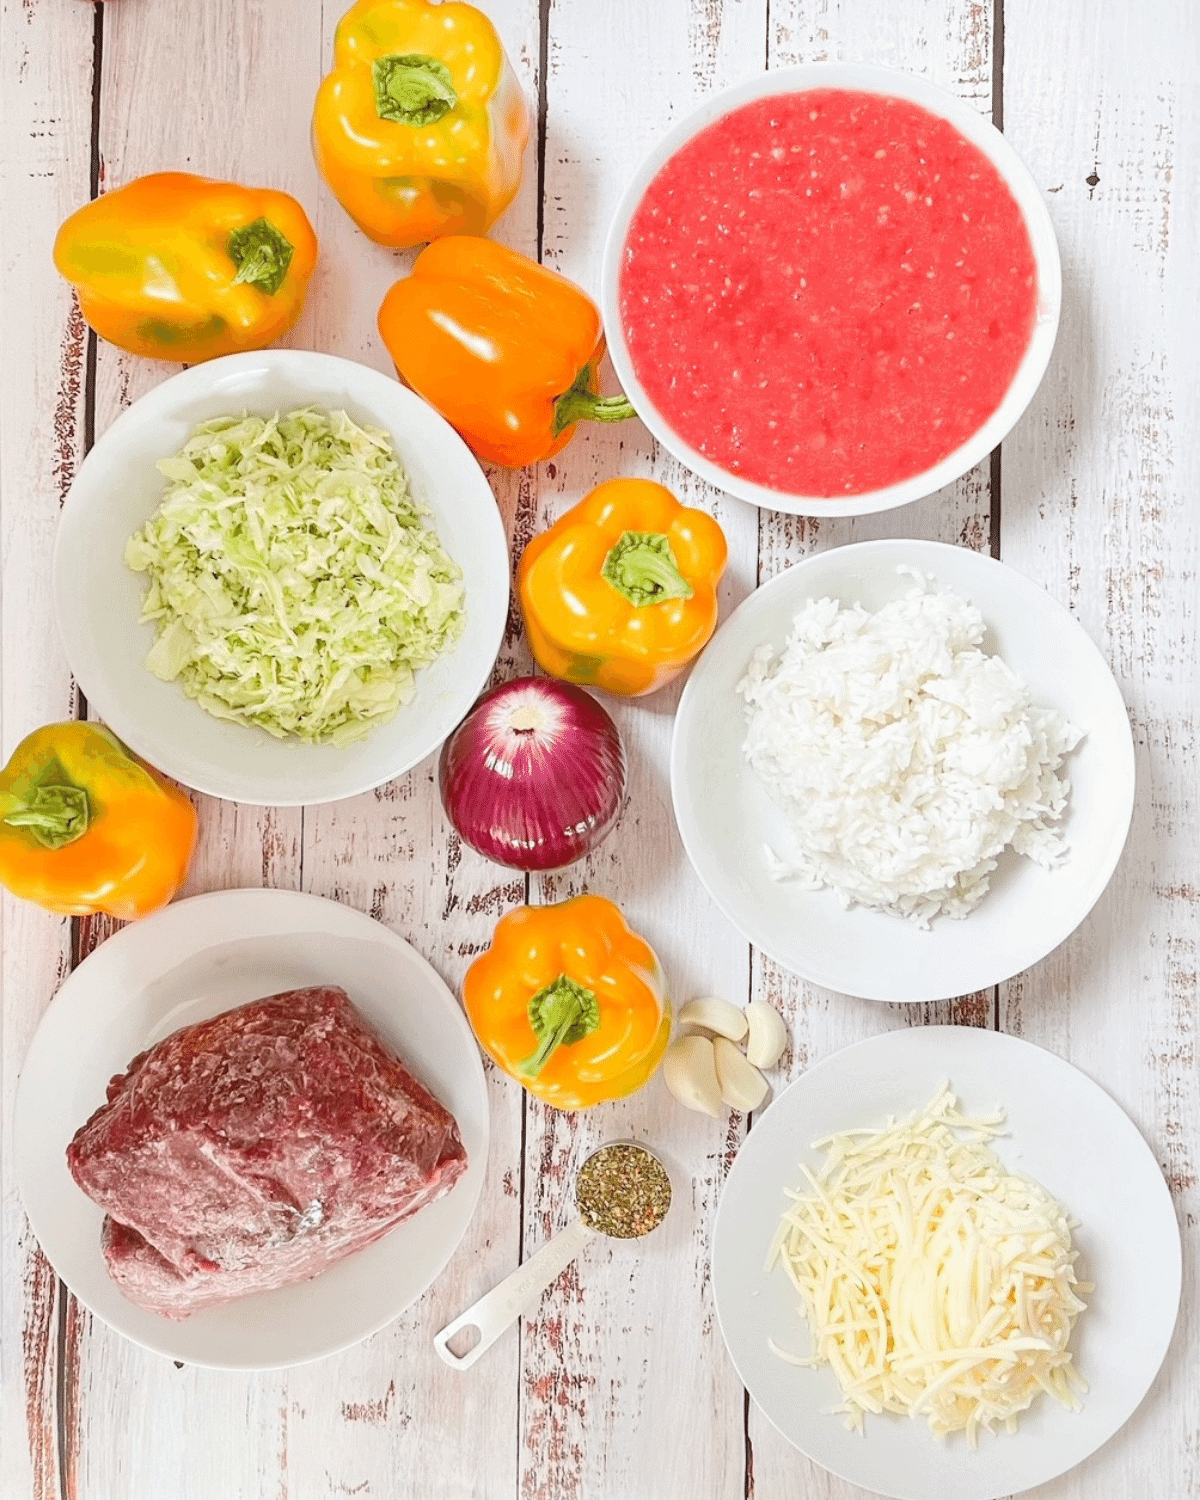 Ingredients to make smoked stuffed peppers